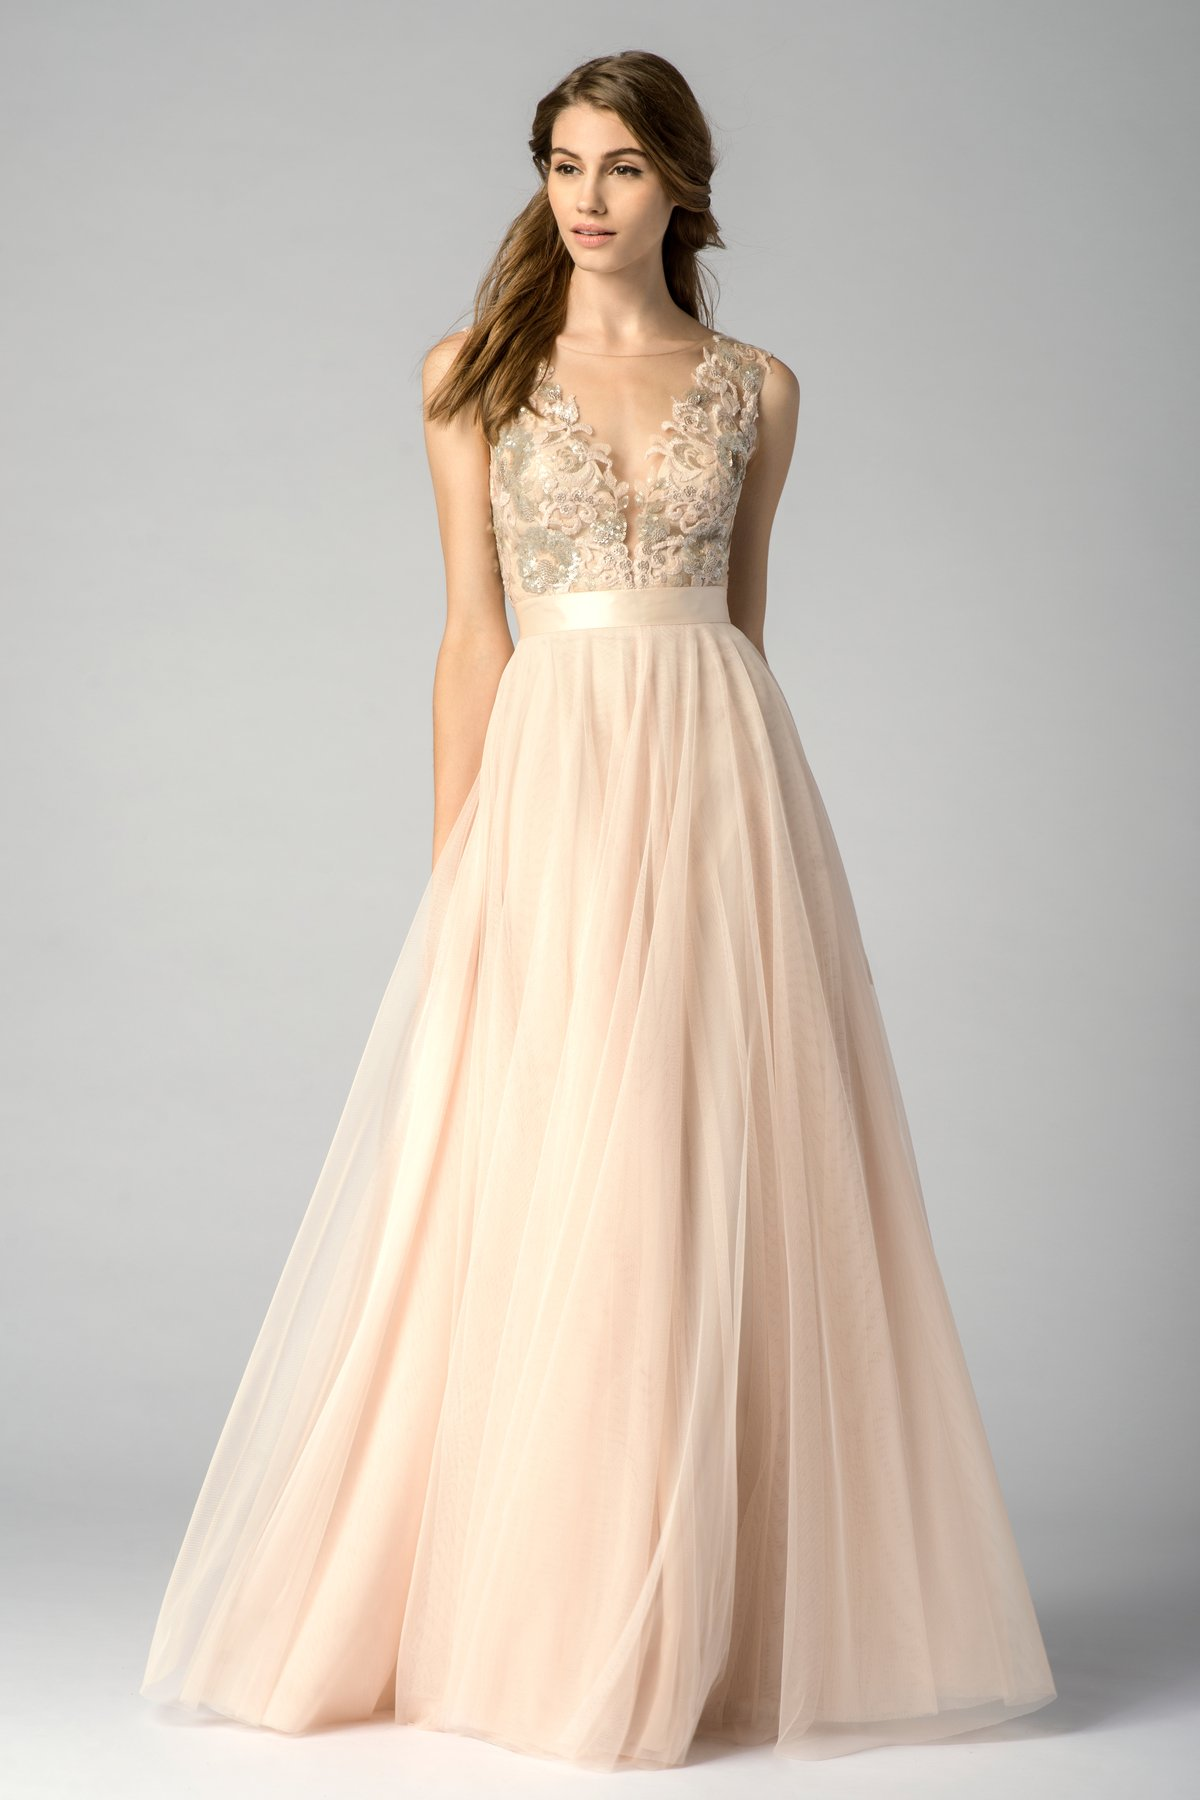 Has anyone ordered the Watters Sophia 7319i Gown?